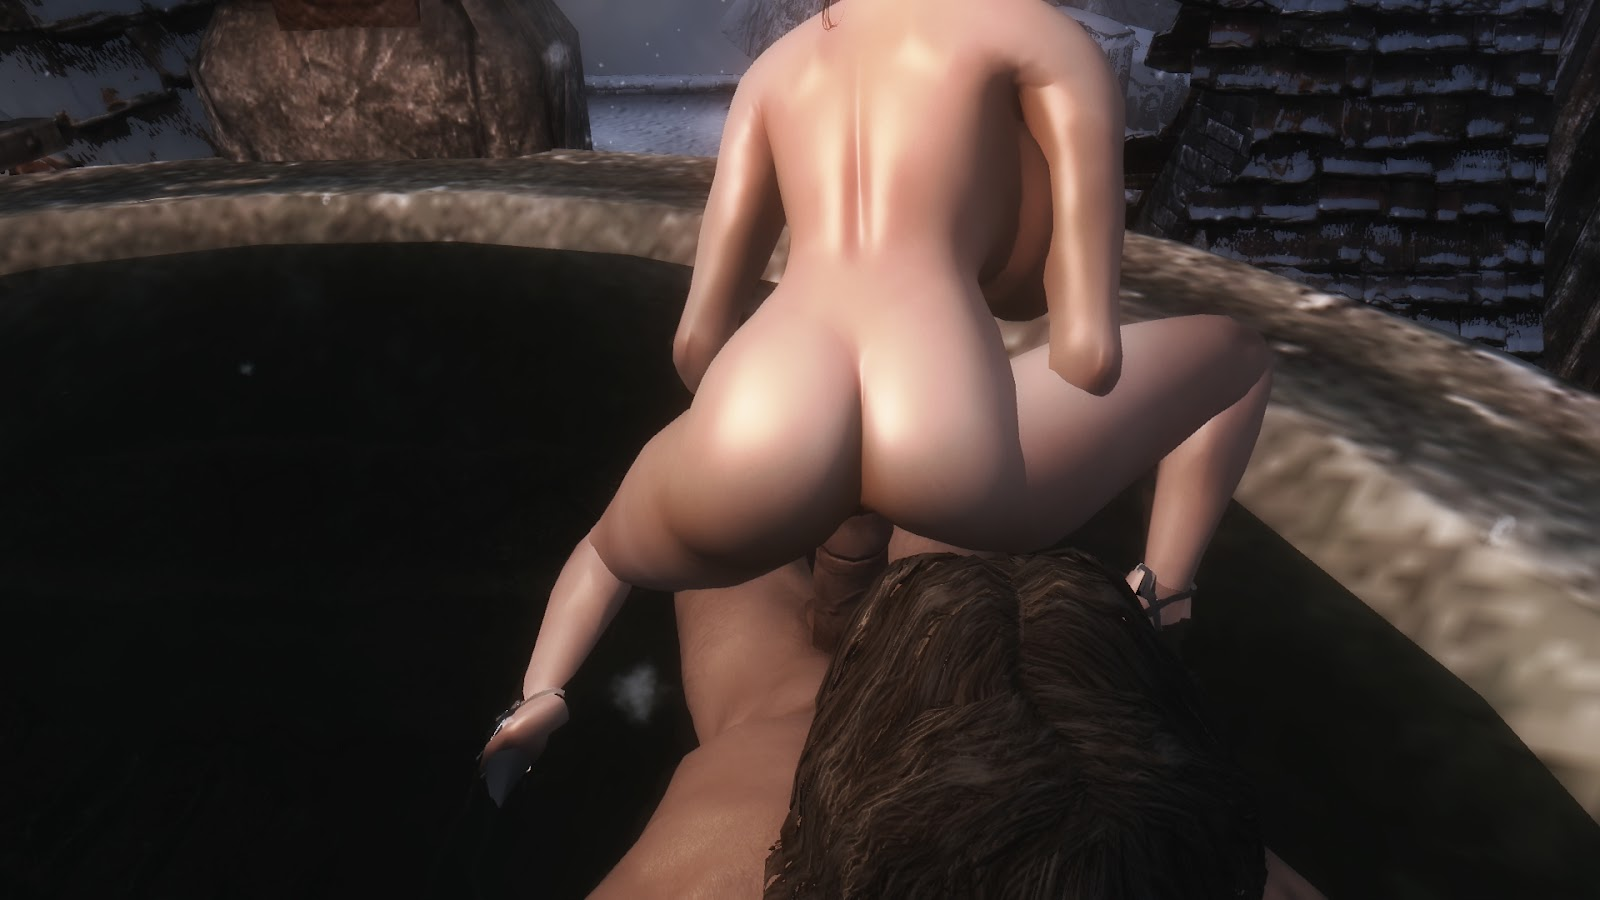 Skyrim adult-only mods sex hardcore naked galleries